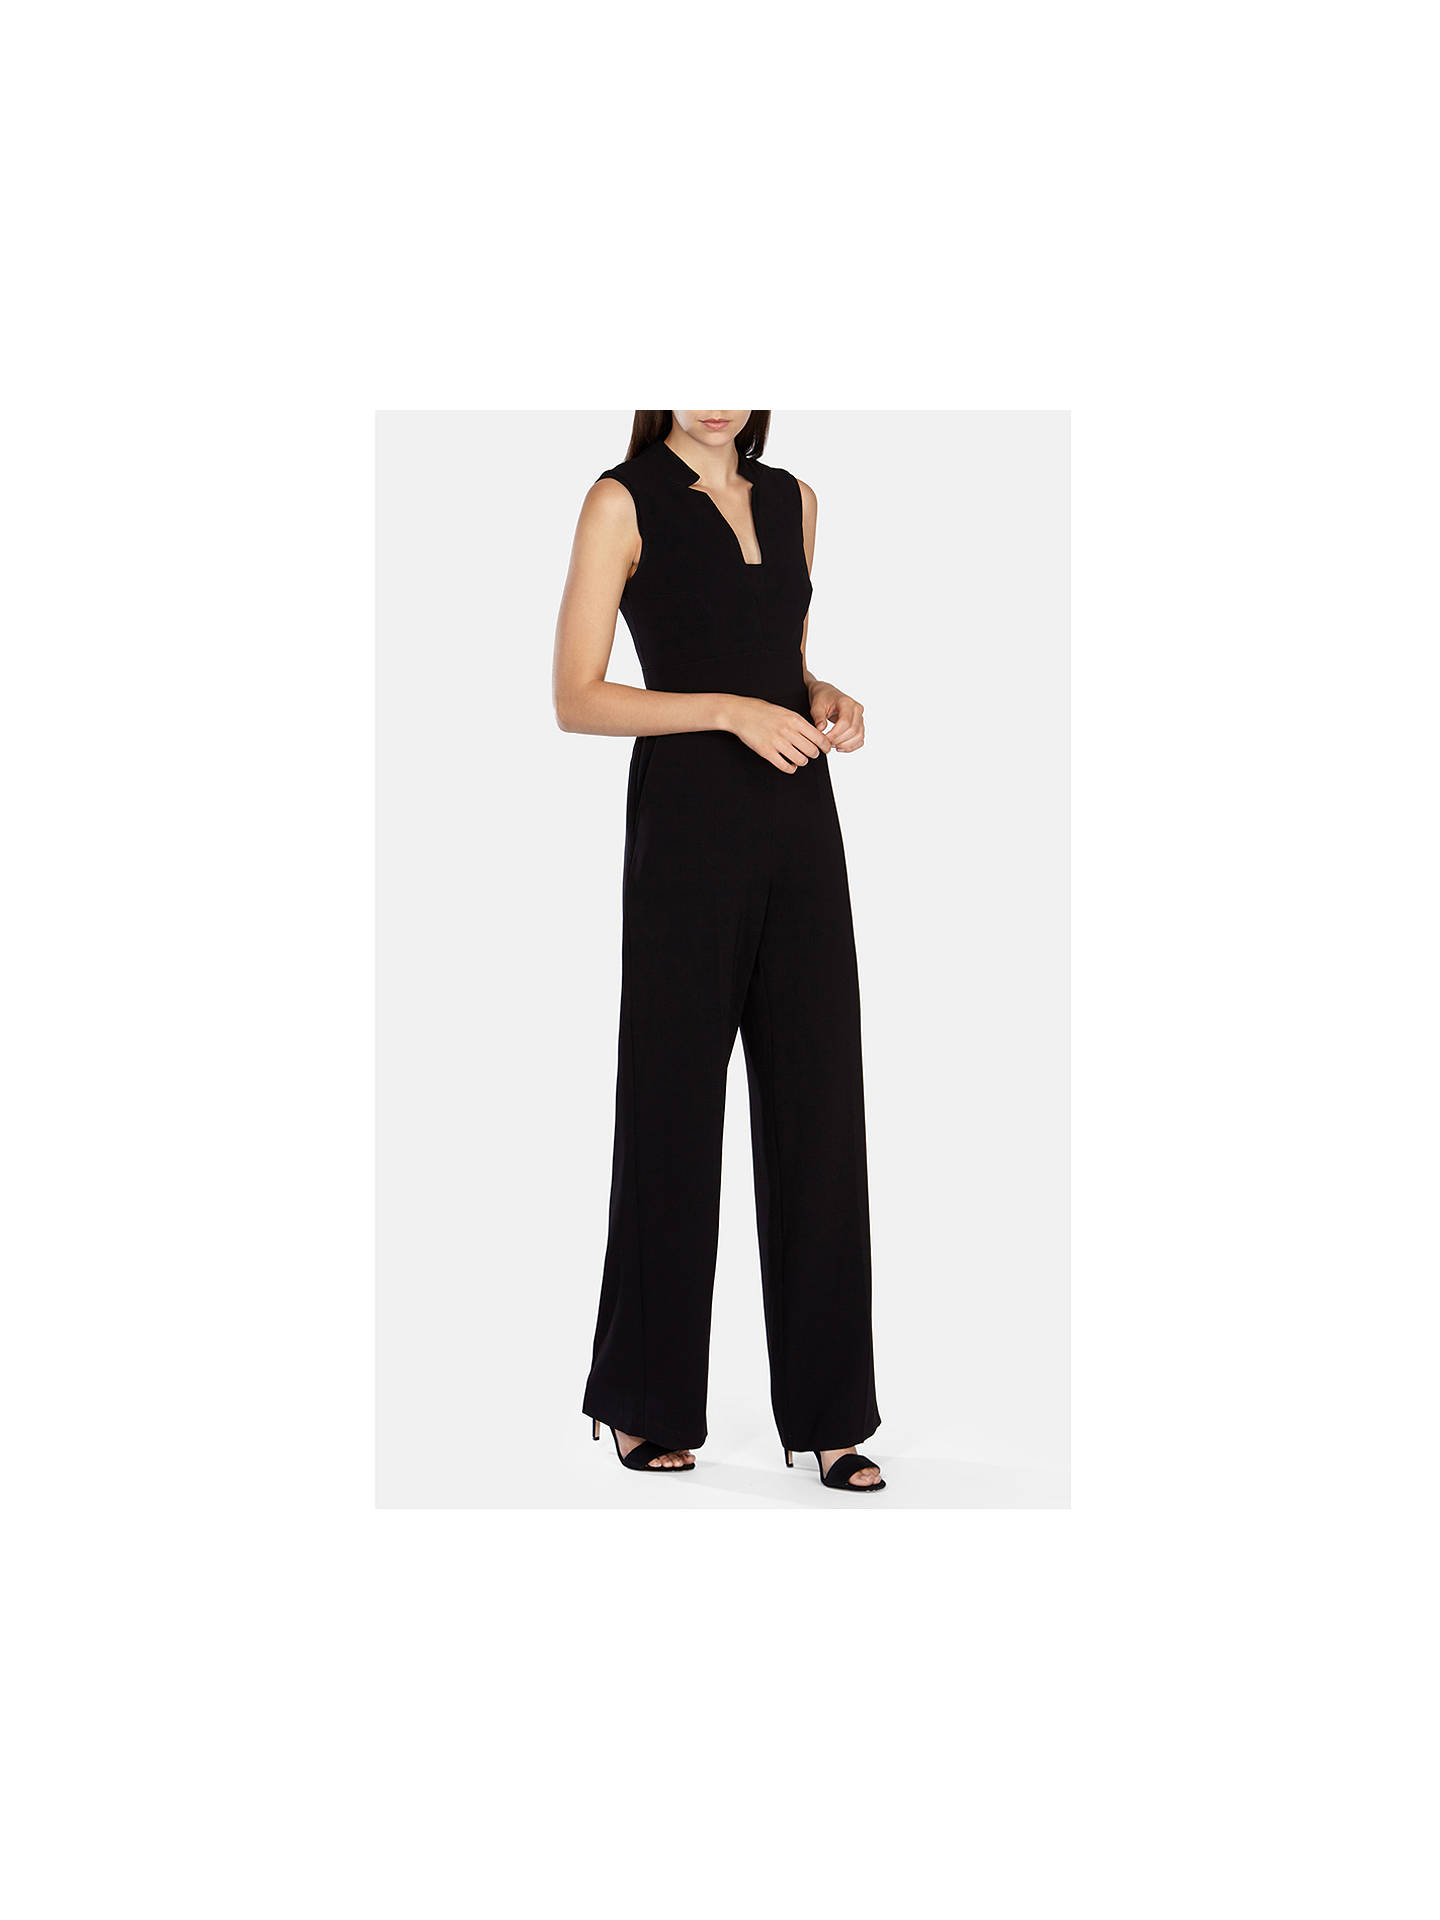 3b3476941a4 ... Buy Karen Millen Tailored Crepe Jumpsuit